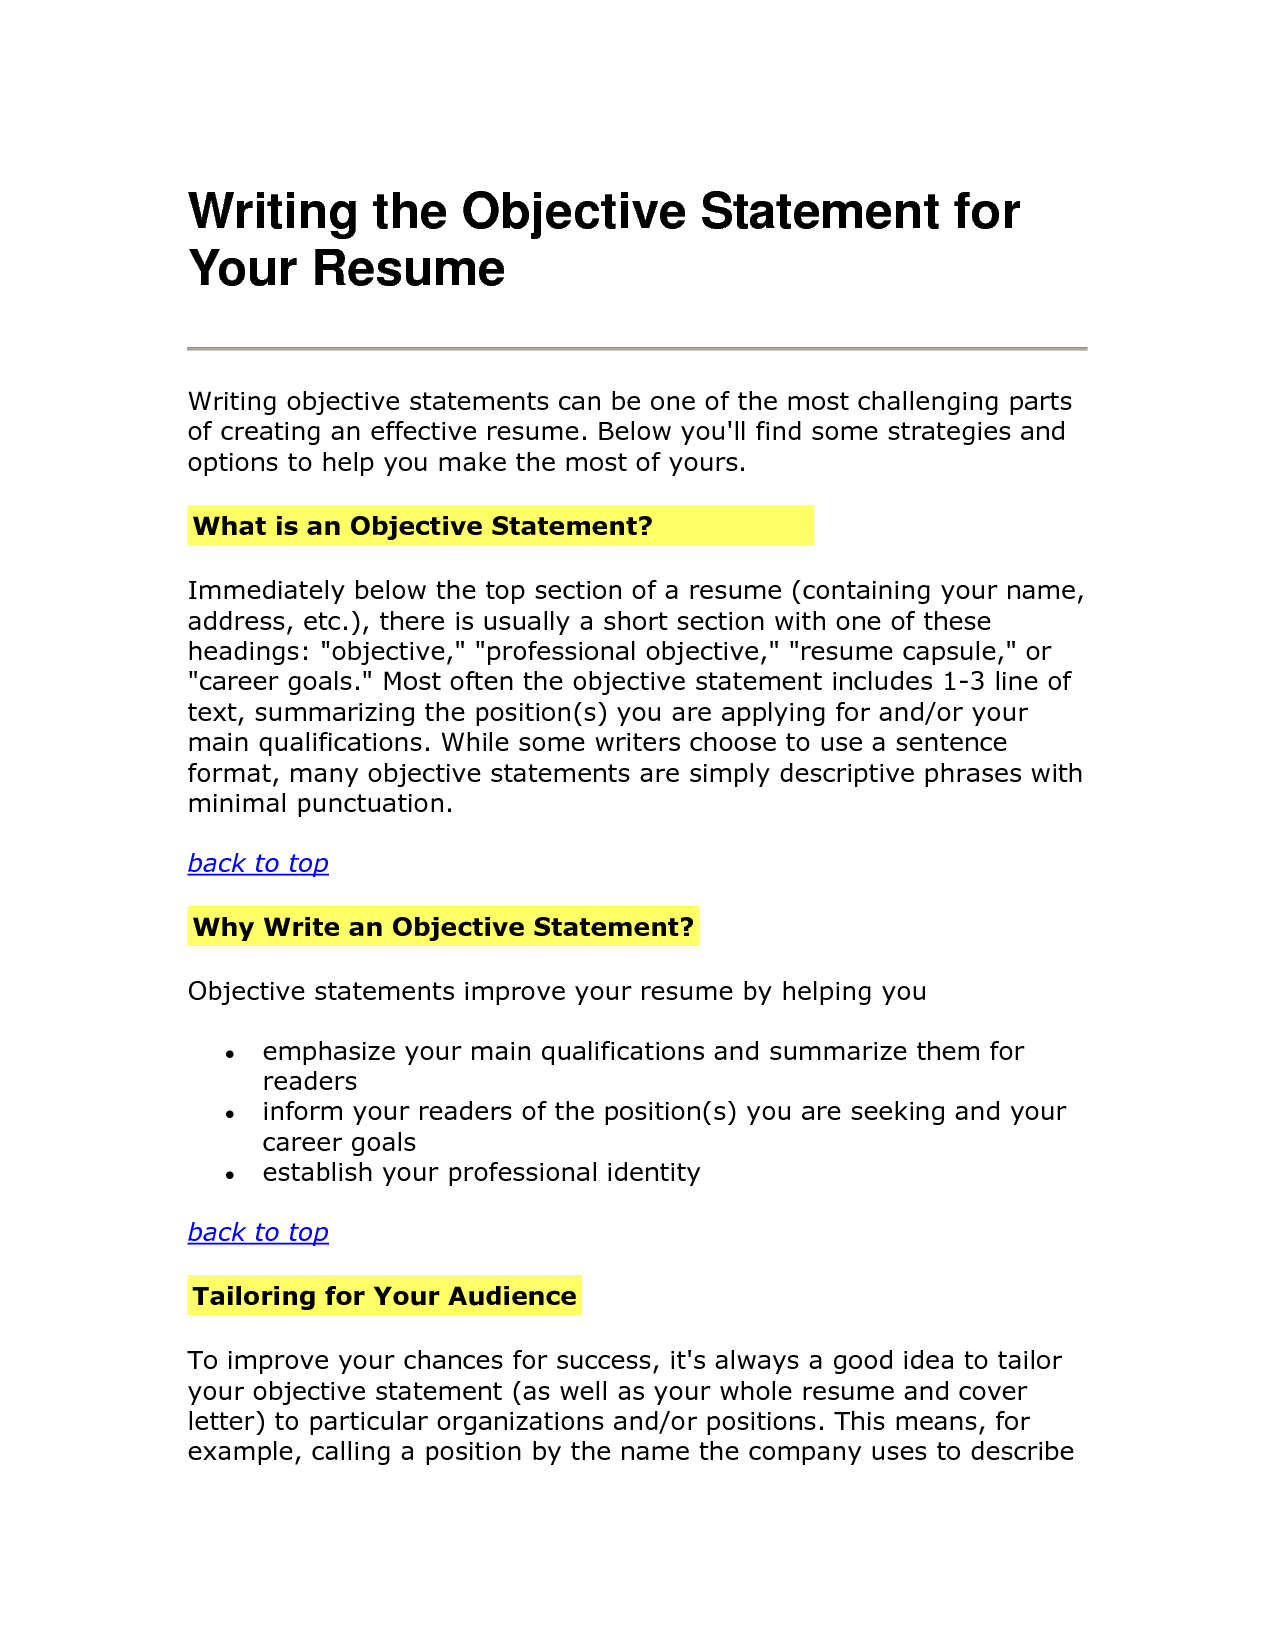 Free resume objective statement examples